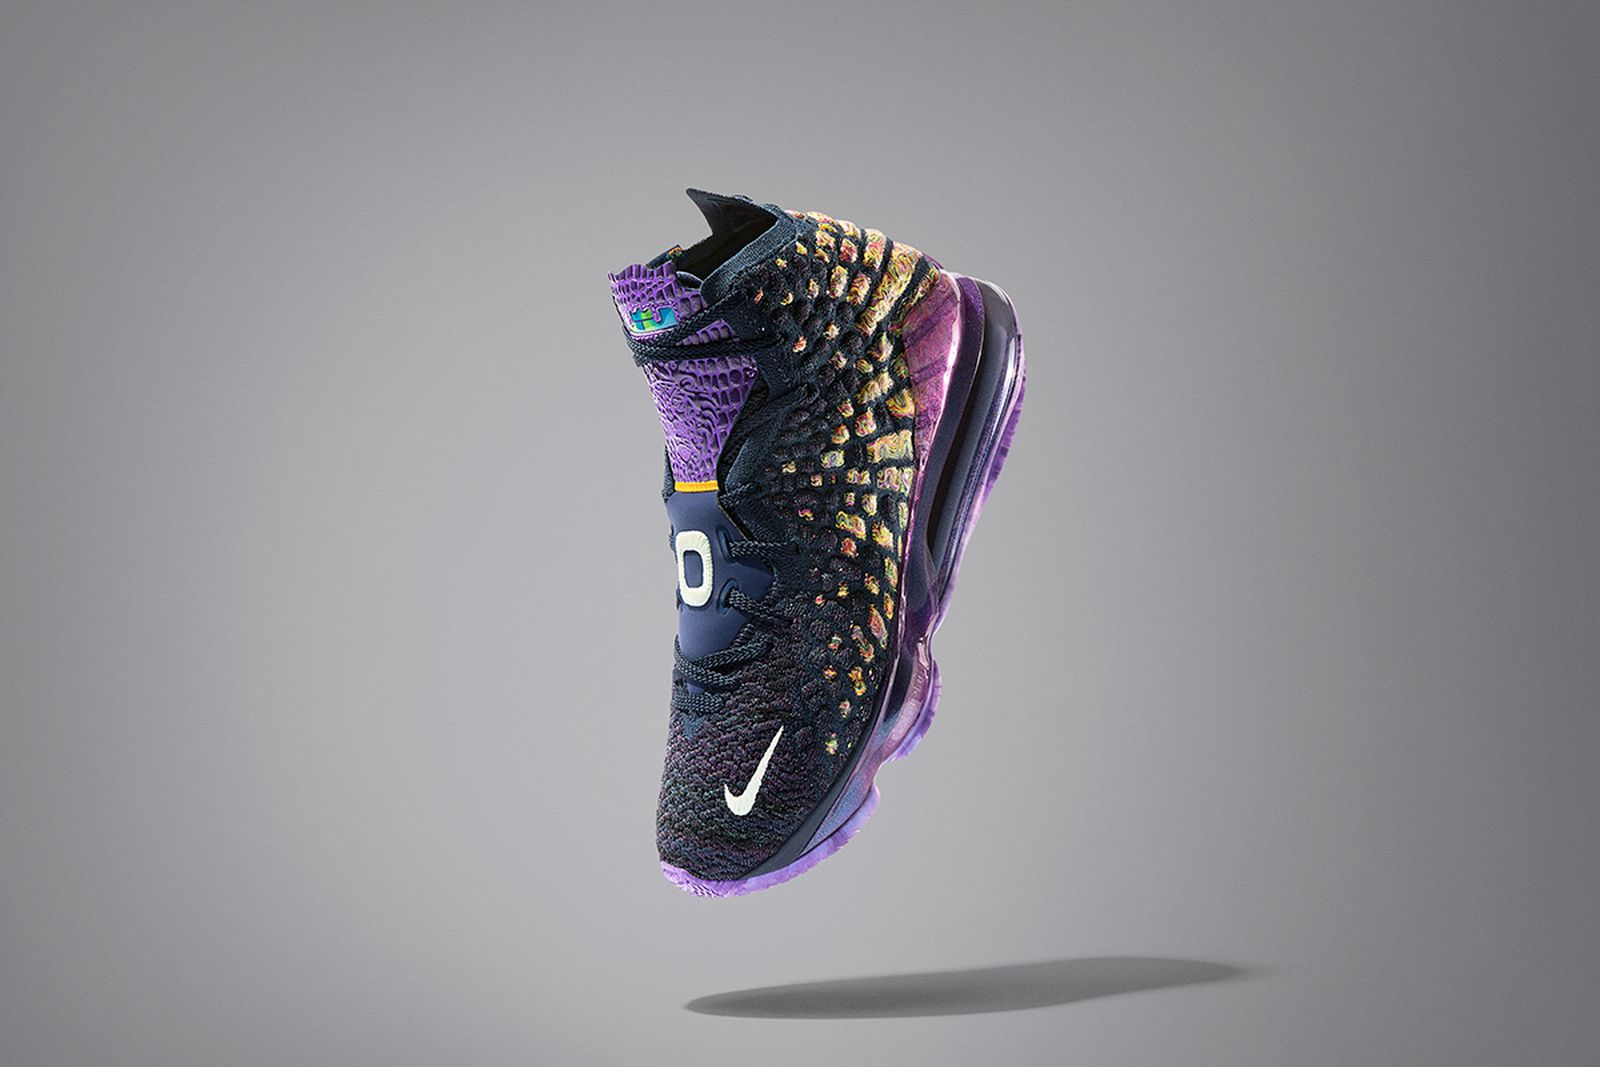 nike-nba-all-star-2020-collection-release-date-price-1-02